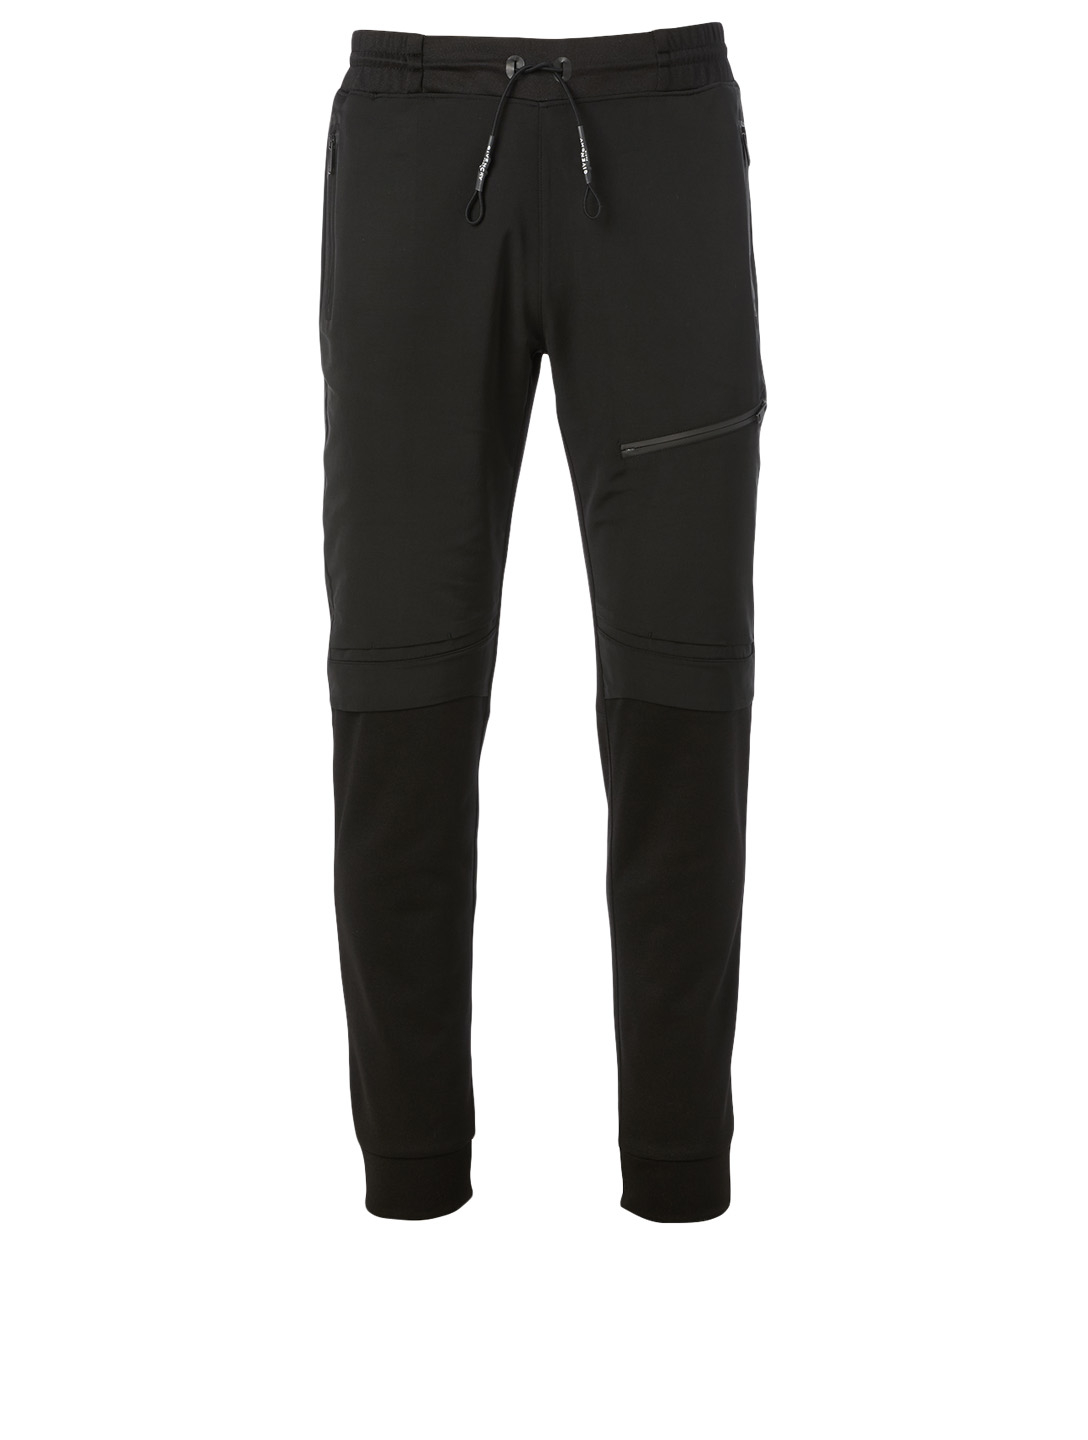 GIVENCHY Technical Jersey Jogger Pants Men's Black